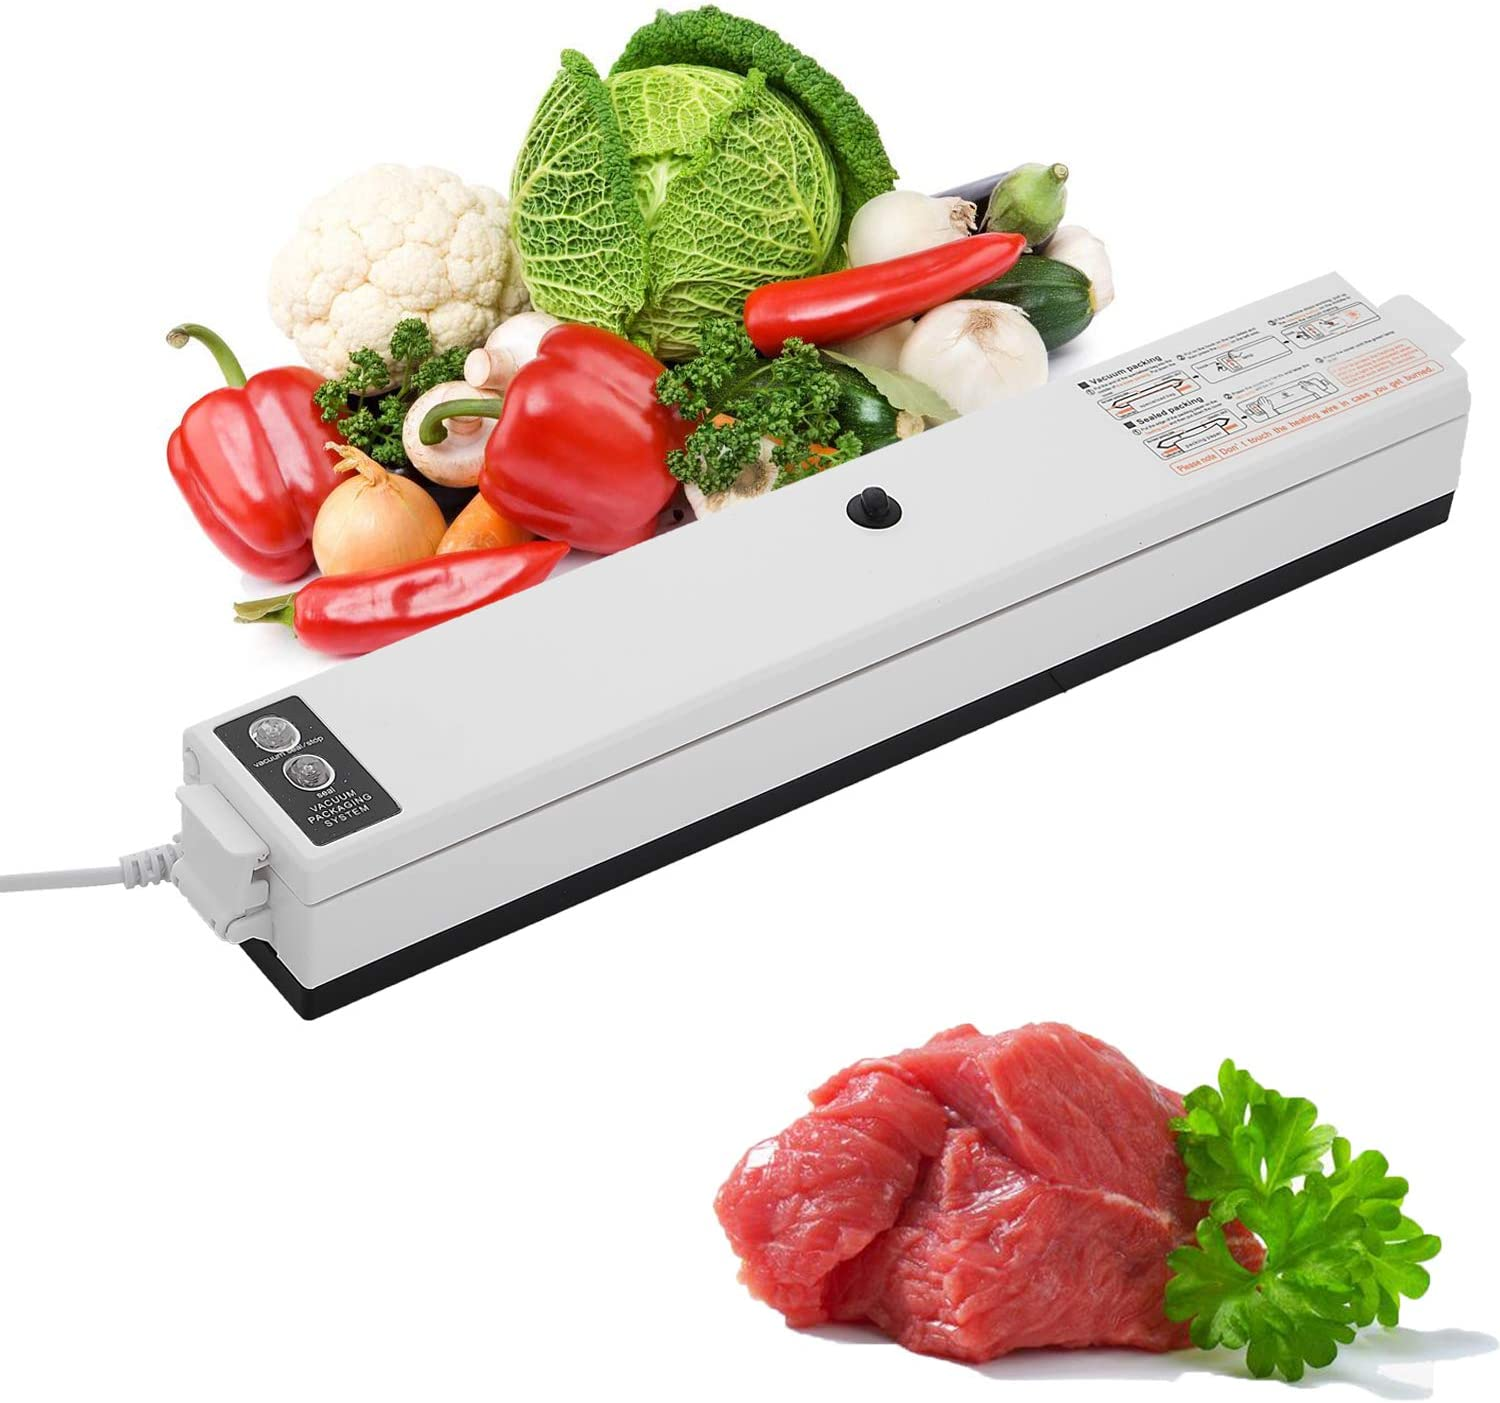 Top Taste Food Vacuum Sealer Machine, One-Touch Automatic Food Saver with Dry Moist Fresh Modes, Starter Kit with 15 PCS Sealer Bags For Sous Vide and Food Storage